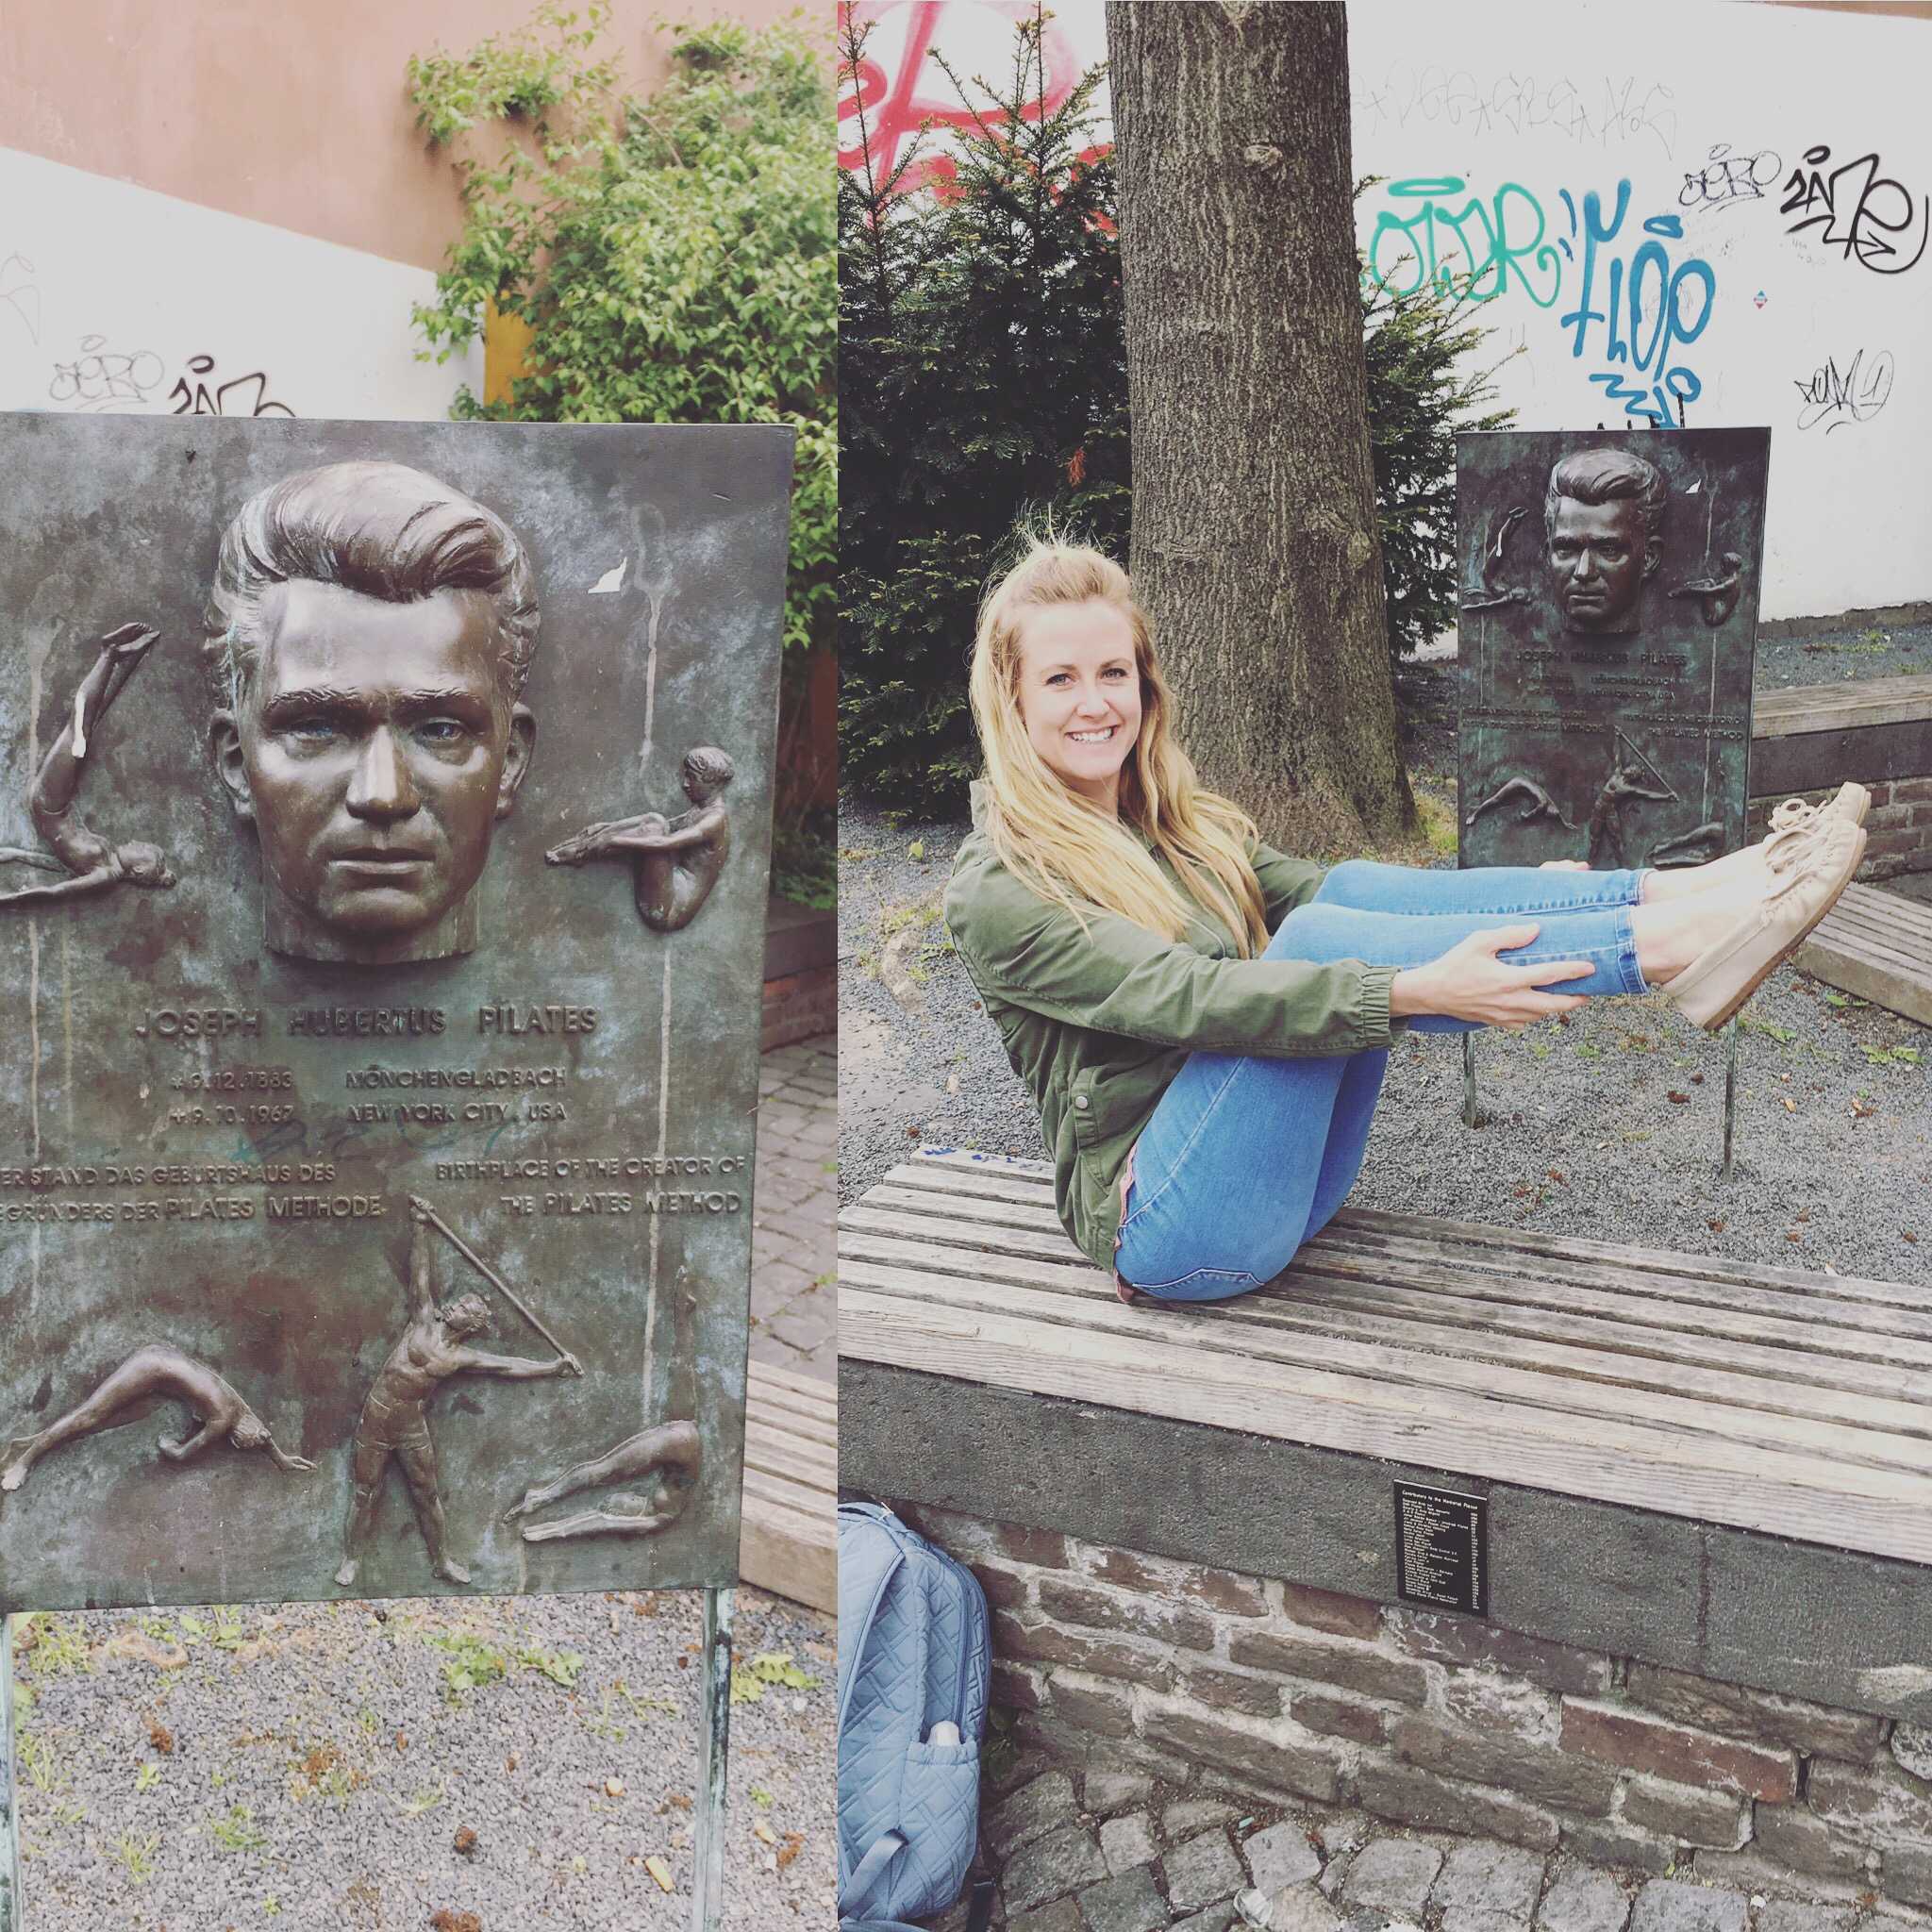 Katie in front of the joseph pilates plaque in Mönchengladbach, Germany. Joseph pilates home was located here and now a plaque and bench are here for his many followers to find.